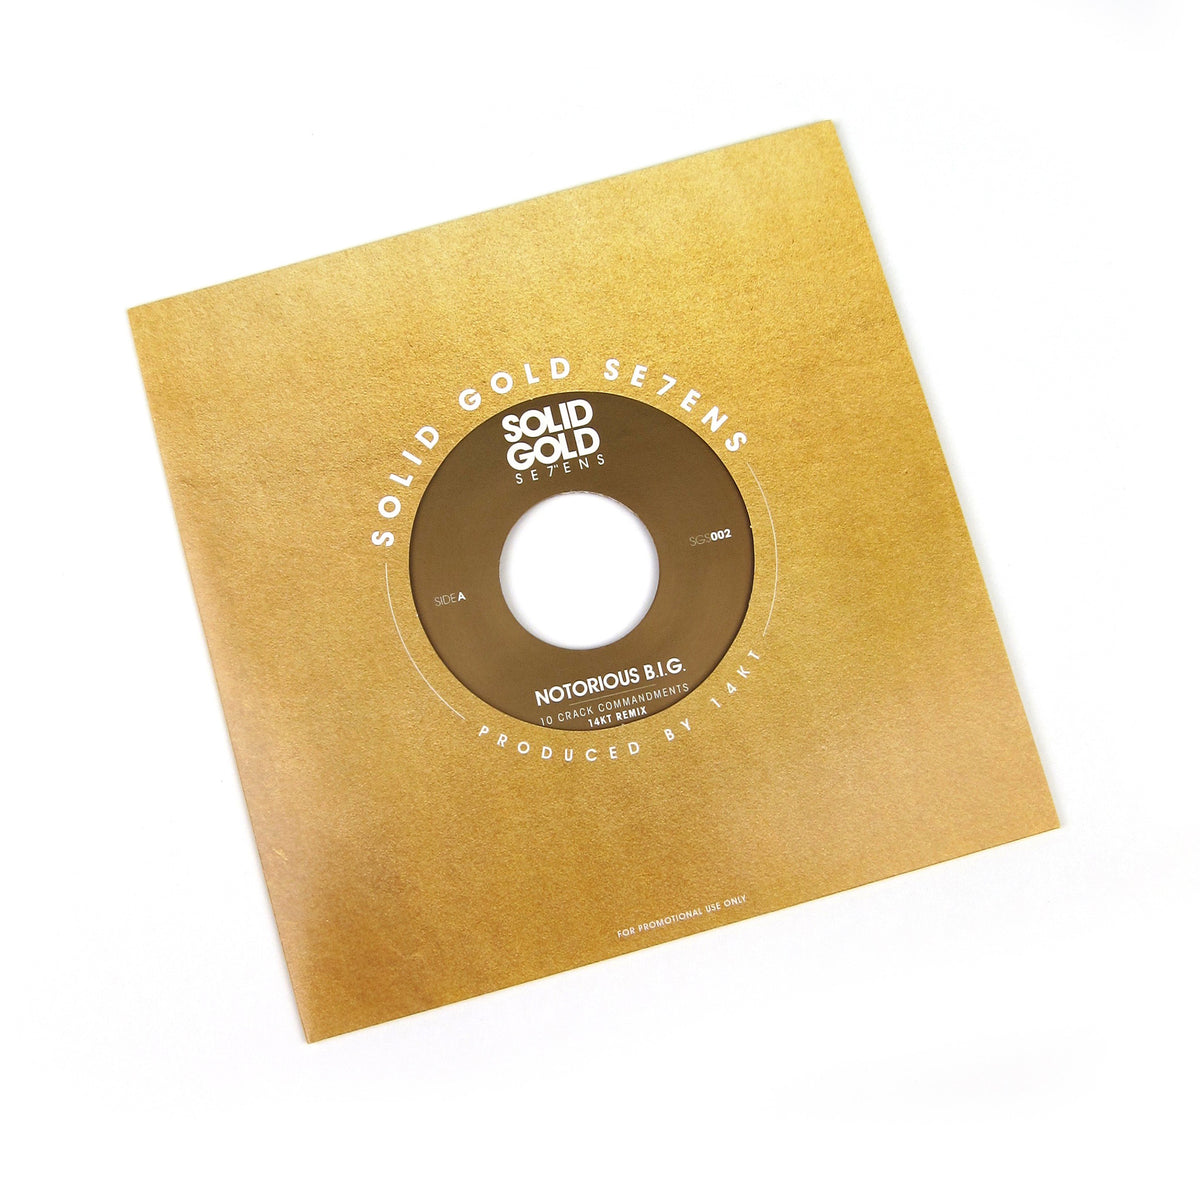 Notorious BIG: 10 Crack Commandments (14KT Remix, Colored Vinyl) Vinyl 7""